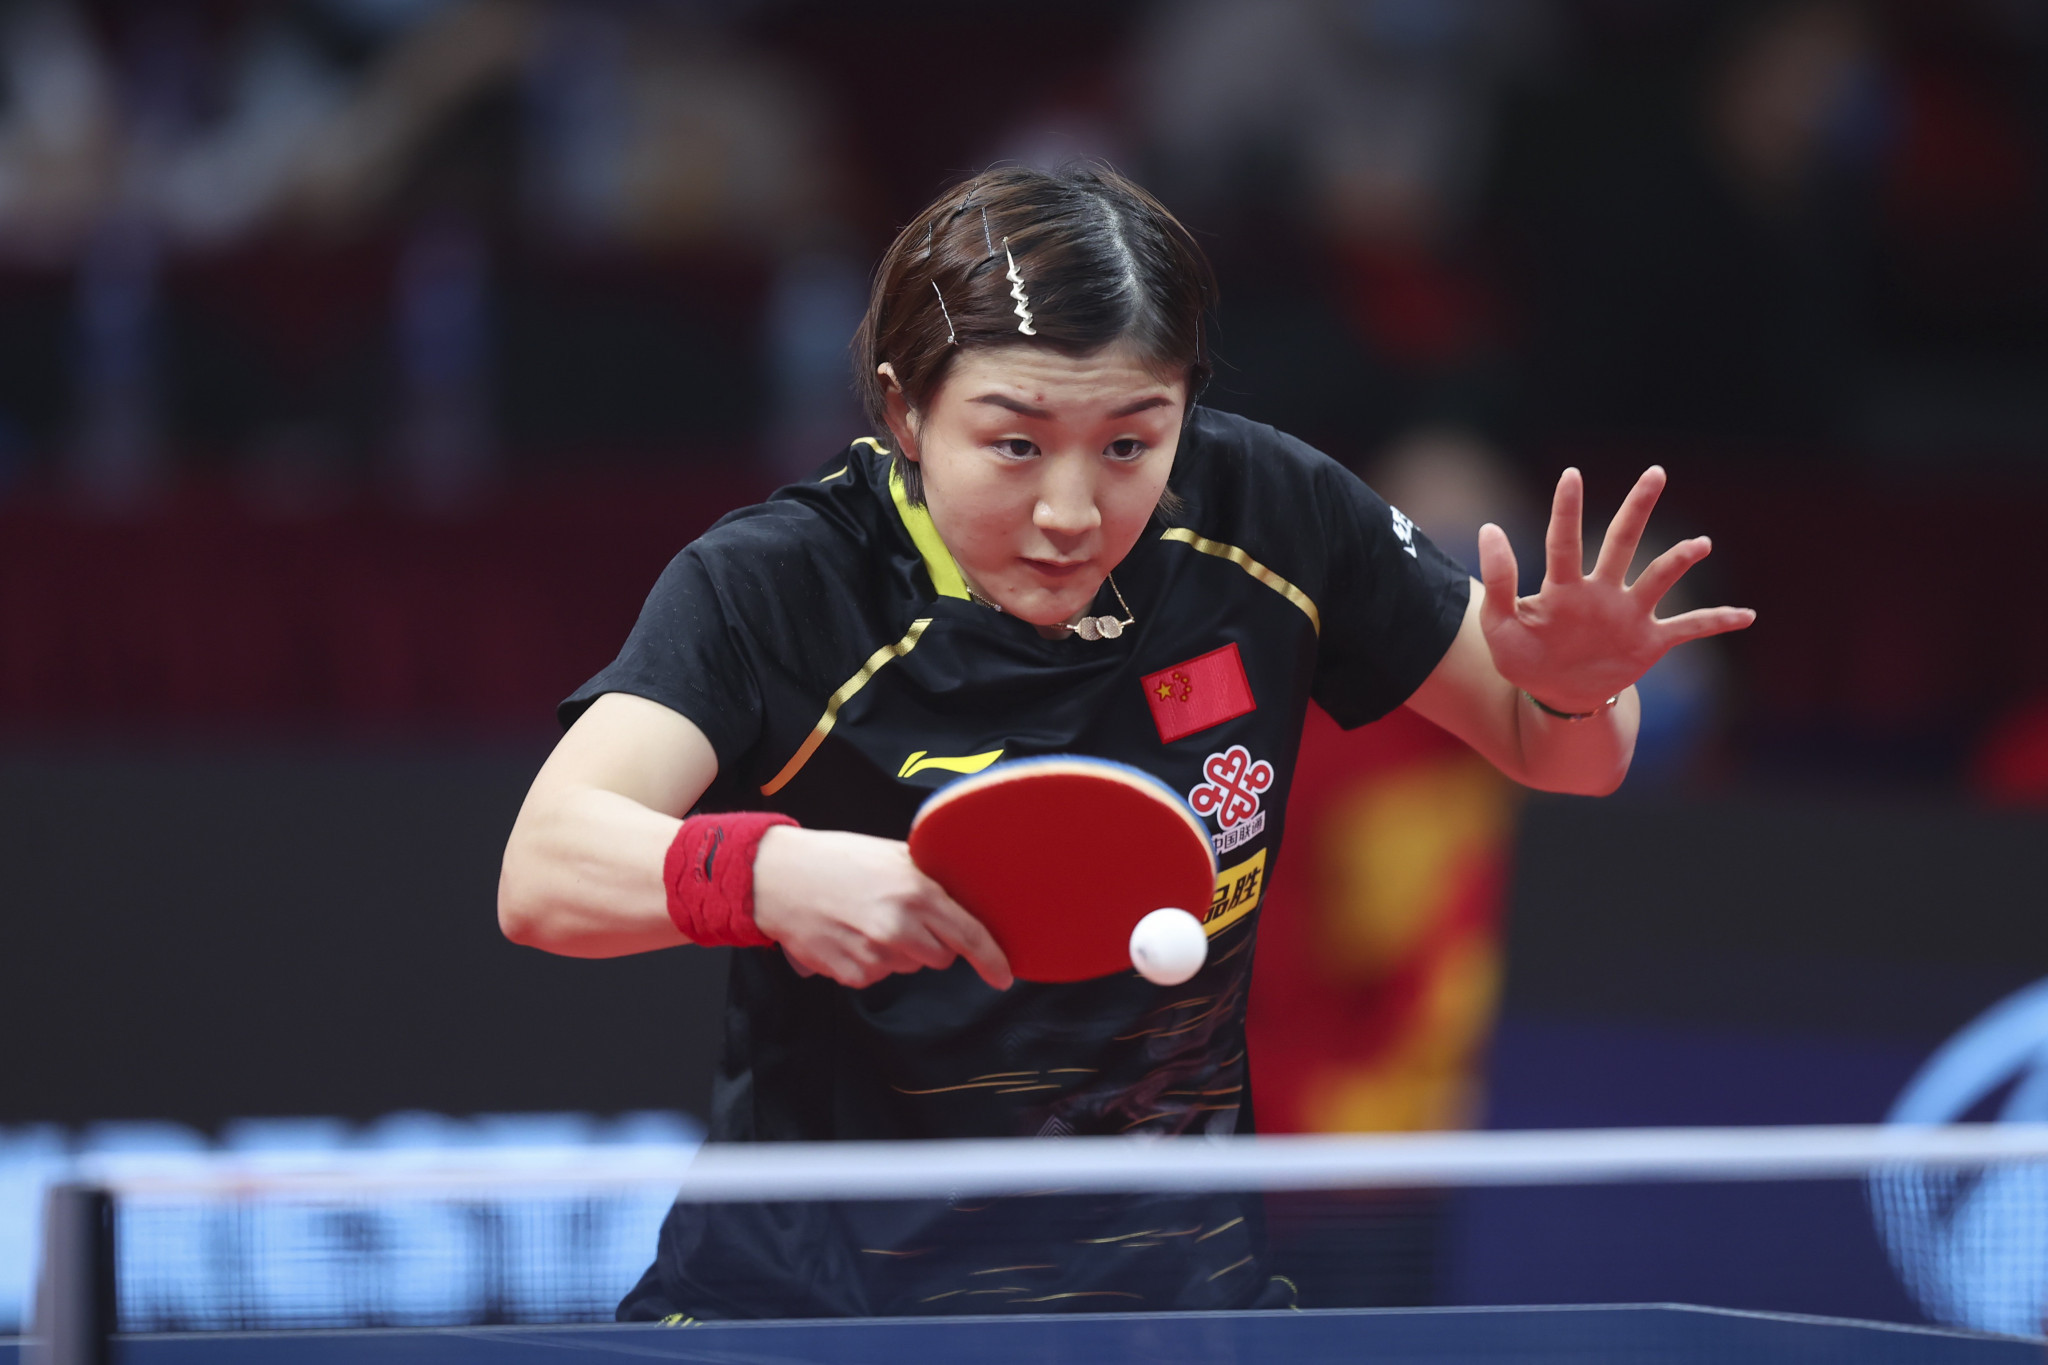 World number one Chen Meng of China is expected to be among the stars on show when the Chinese hub takes place later this year ©Getty Images